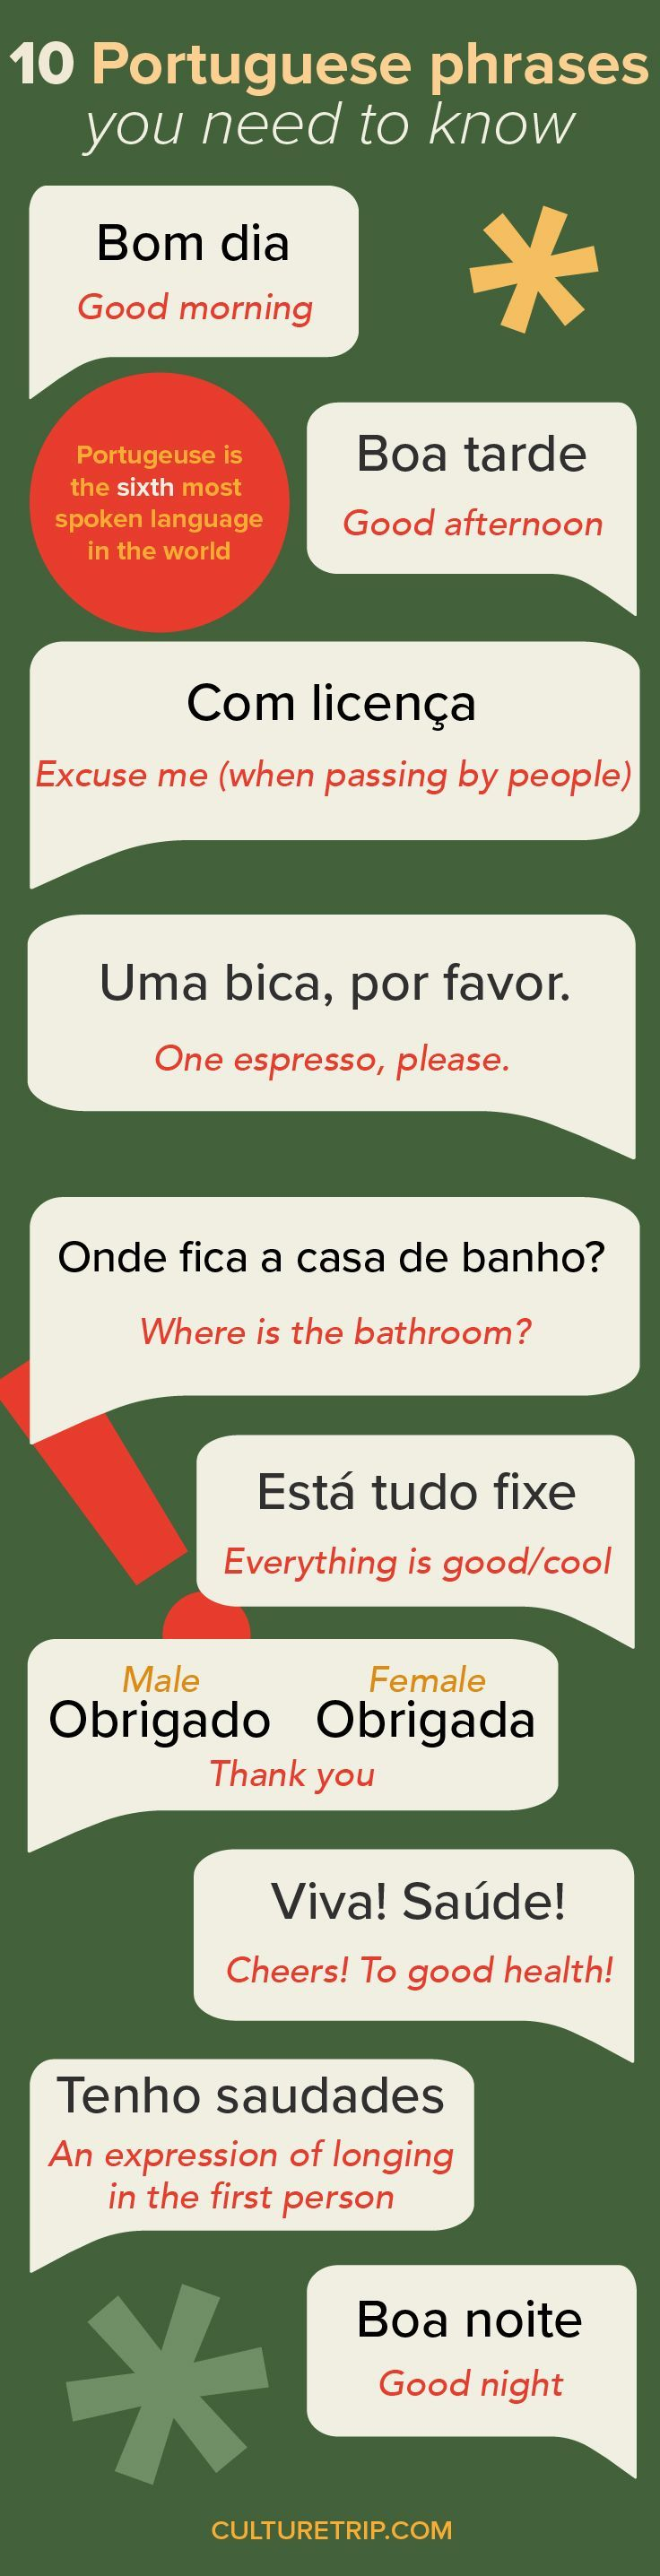 10 Essential Portuguese Phrases You Need To Know Before Visiting Portugal #portugueselanguage